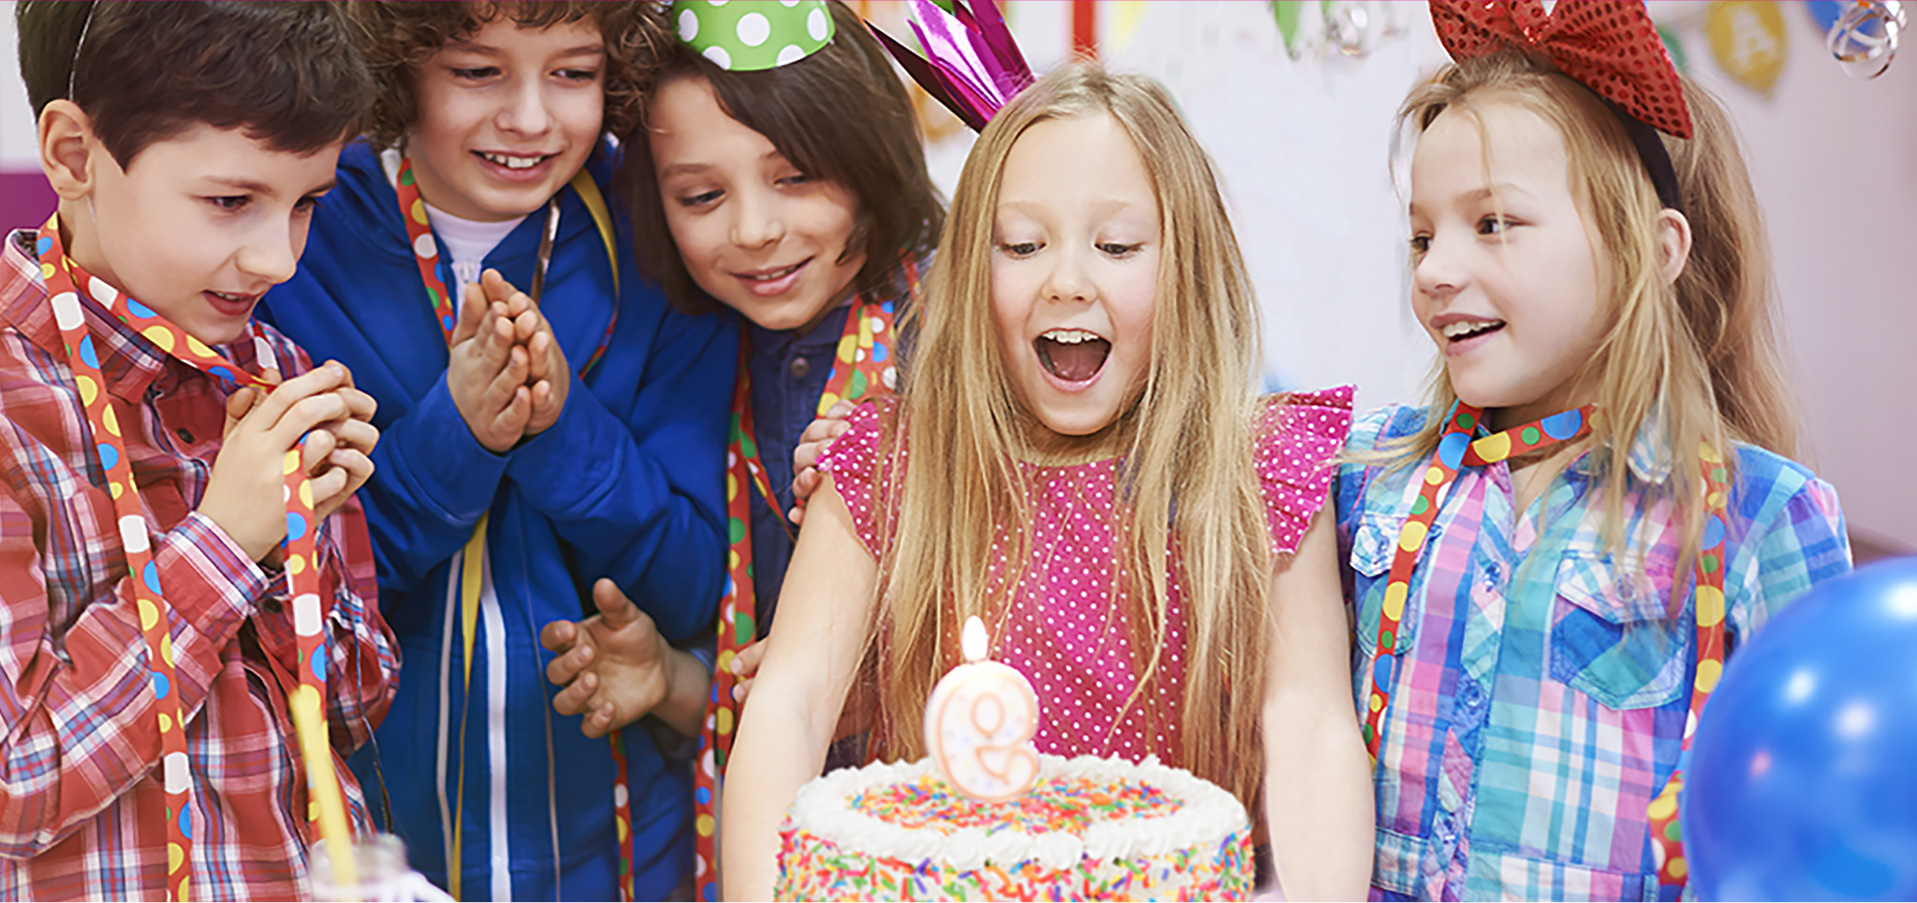 Five children standing around a Menchie's frozen yogurt birthday cake